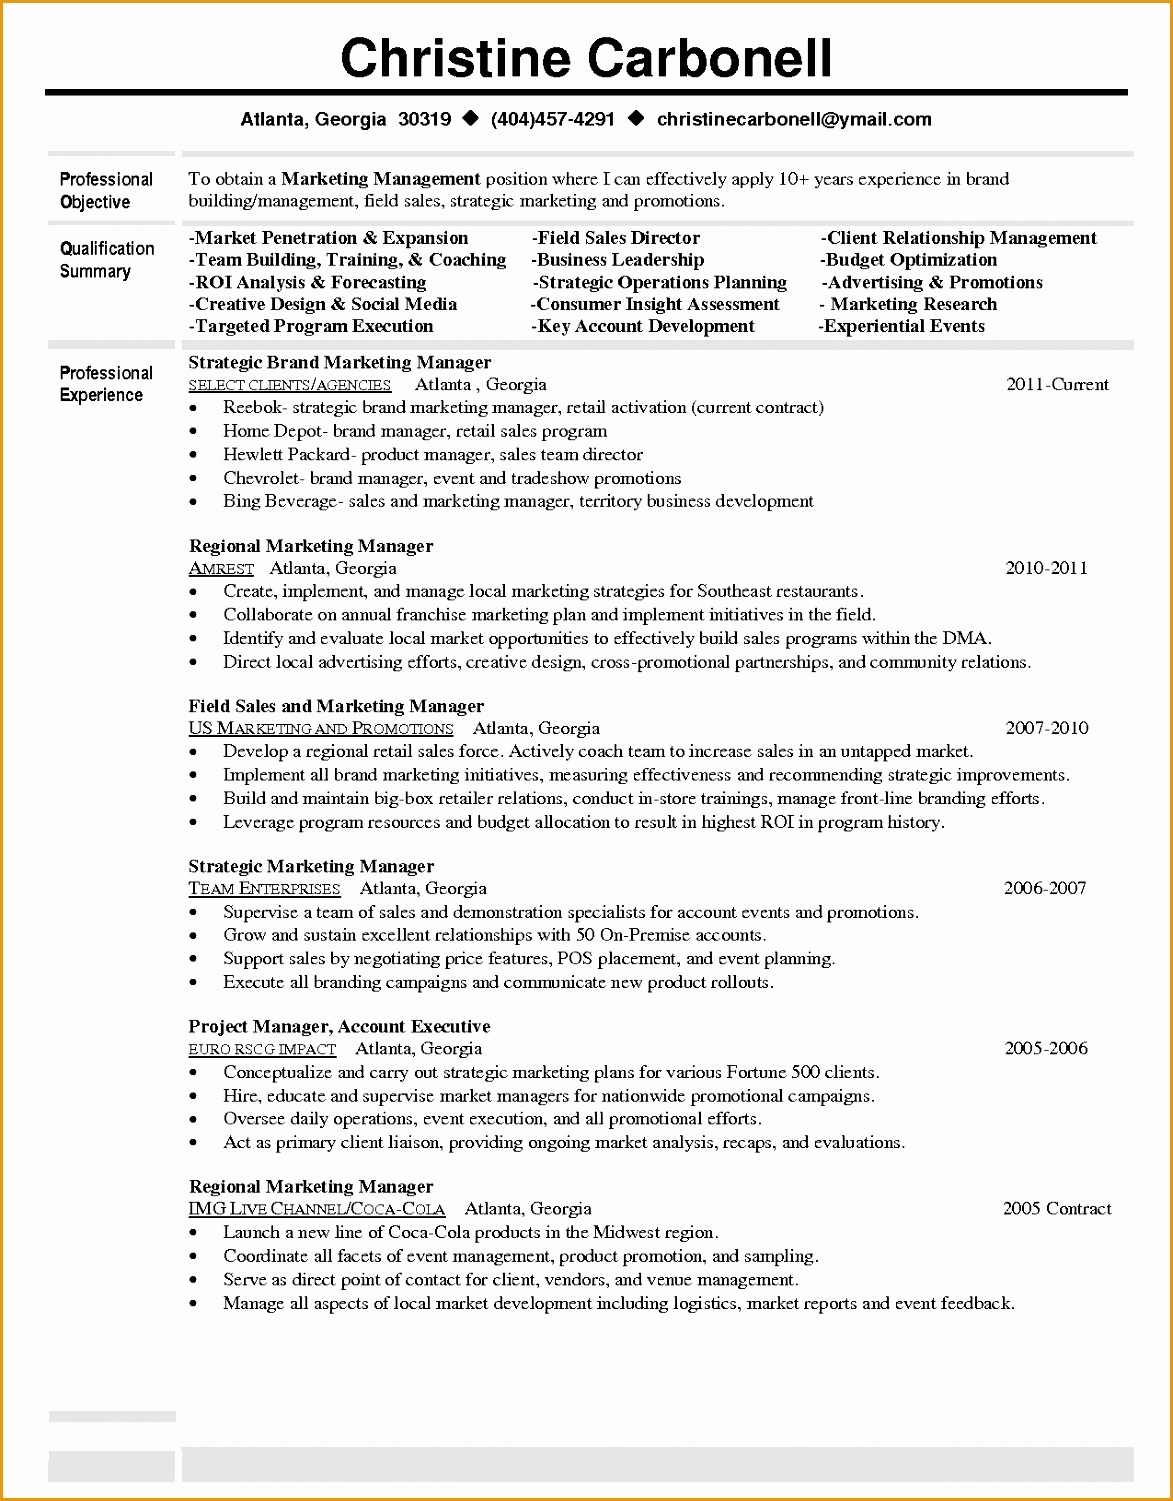 Inventory Manager Resume Objectives 7 Marketing Manager Resume Objective Free Samples